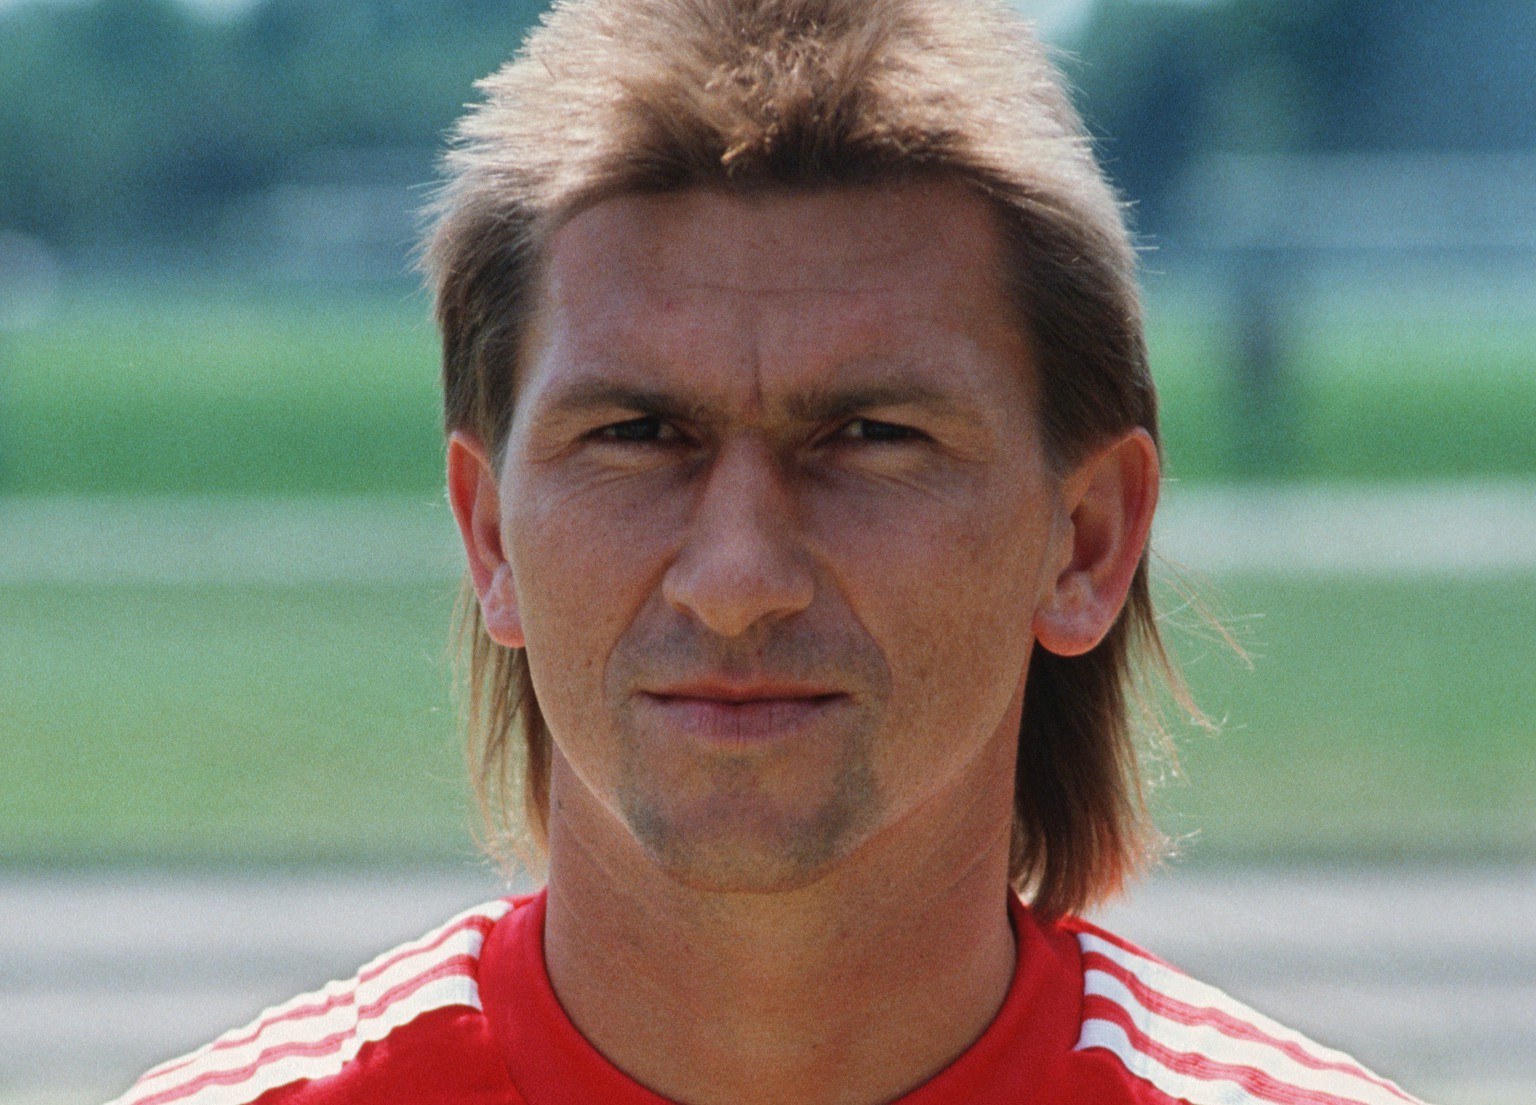 MUNICH, GERMANY - JULY 01: Klaus Augenthaler of Munich poses during the photo call and team presentation of FC Bayern Munich on July 01, 1988 in Munich, Germany.  (Photo by Bongarts/Getty Images)